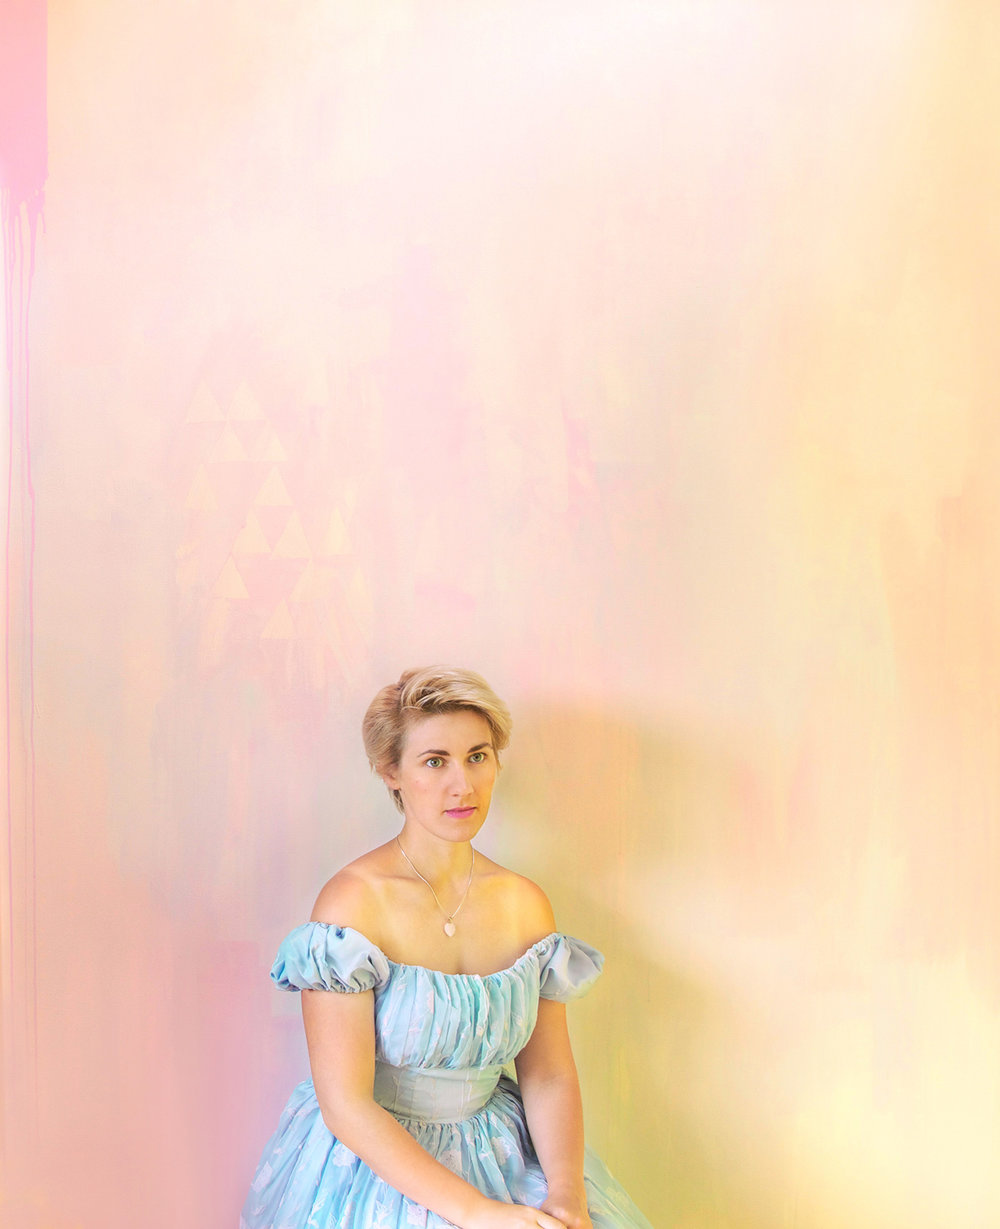 Alice in Wonderland theme styled interior featuring pastel abstract mural and portrait of Alice seated staring wistfully off camera, wearing off the shoulder blue princess dress and short blonde hair.